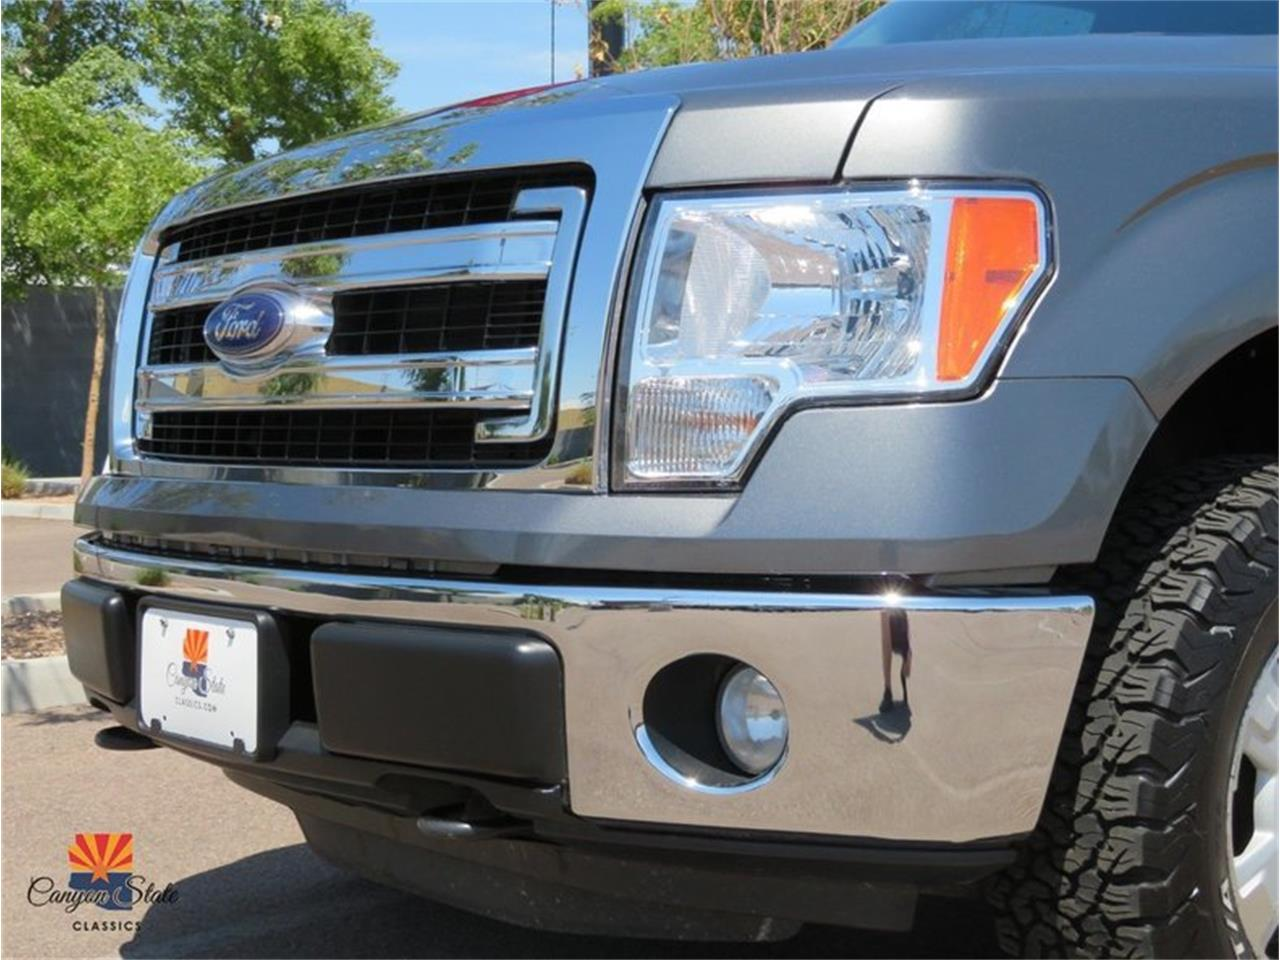 2014 Ford F150 for sale in Tempe, AZ – photo 30